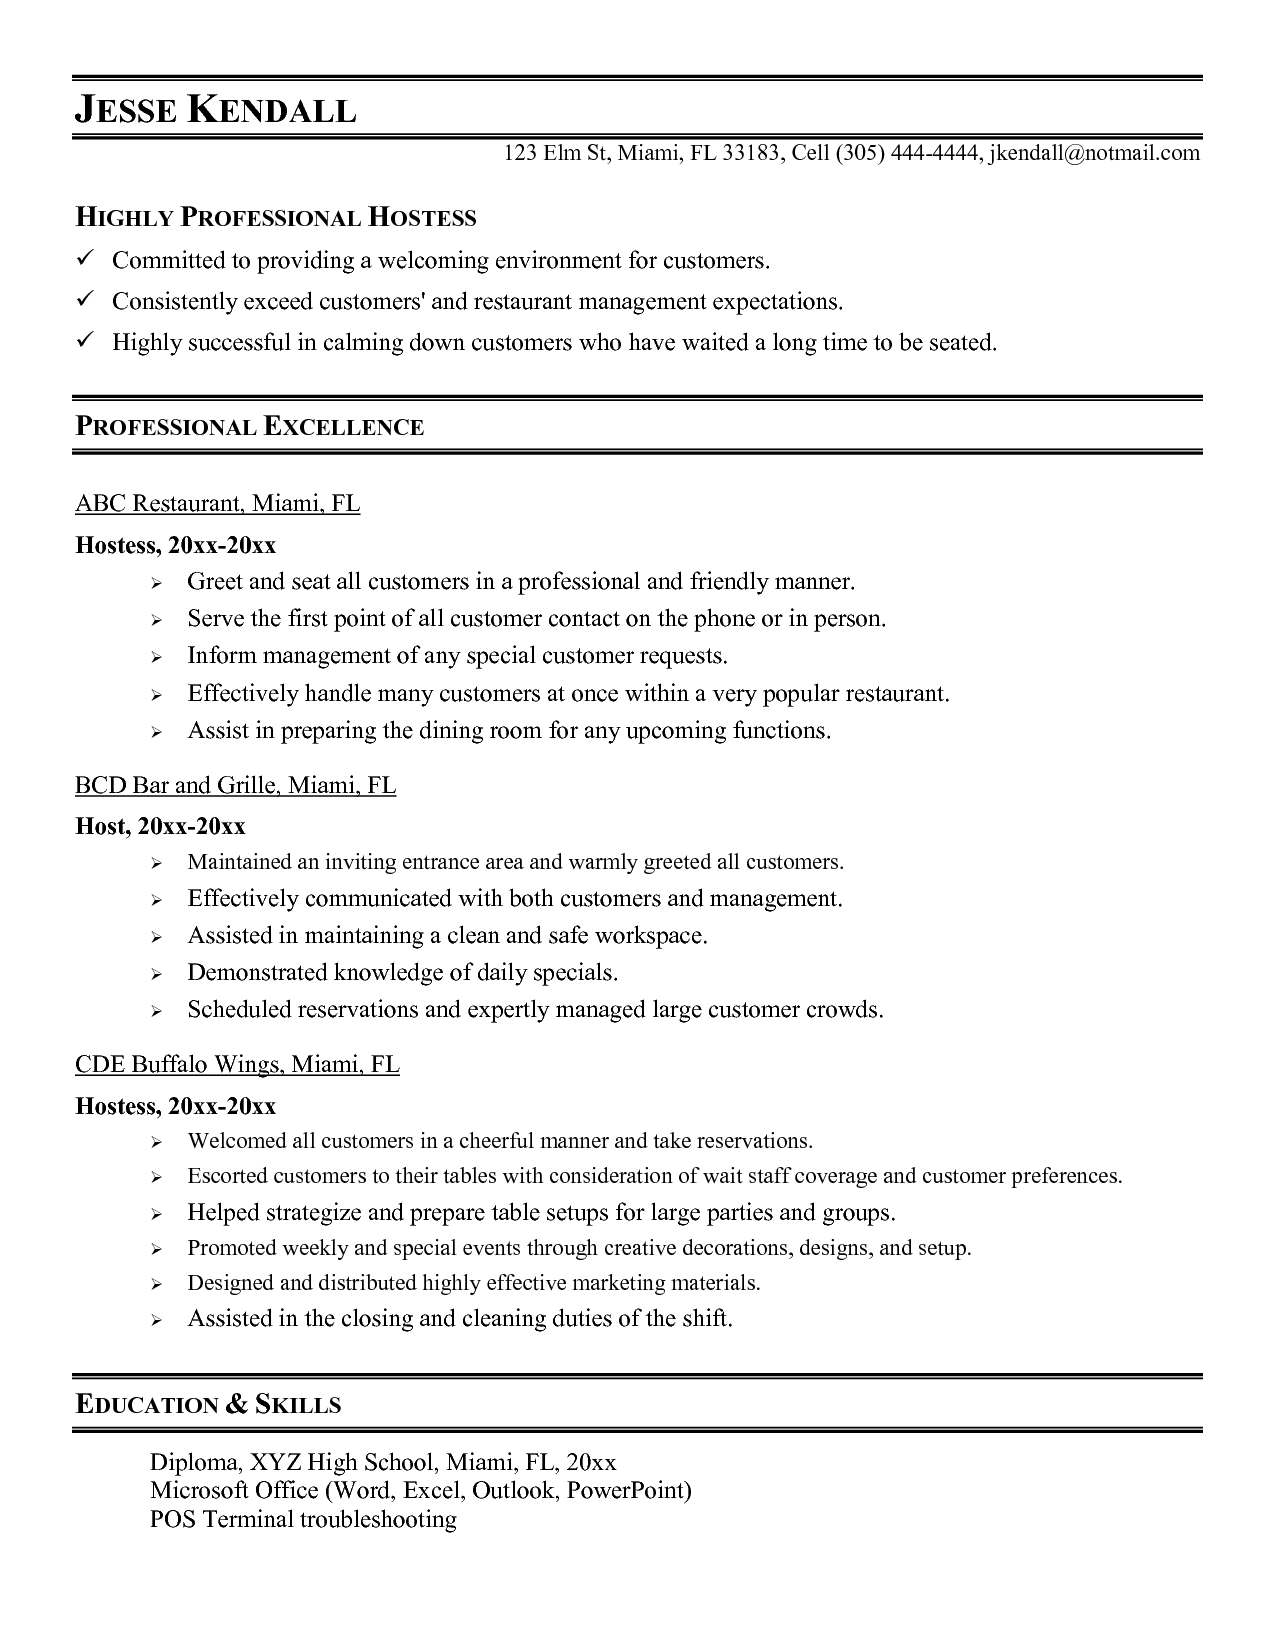 sample resume for hostess resume cv cover letter example hostess - Table Busser Job Description